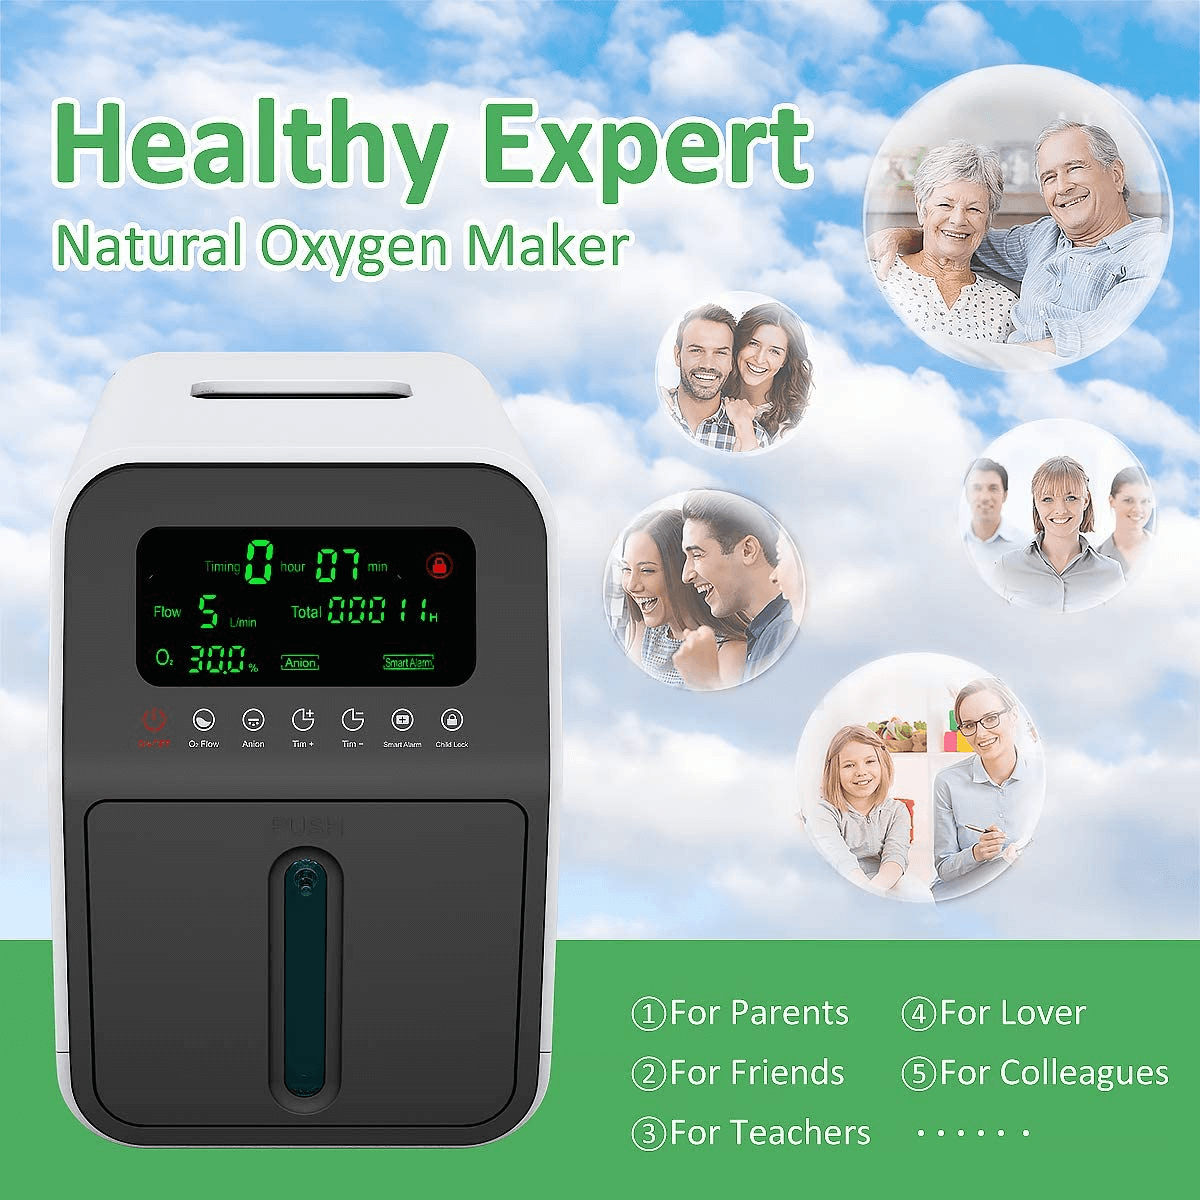 Oxygen Concentrator Near Me